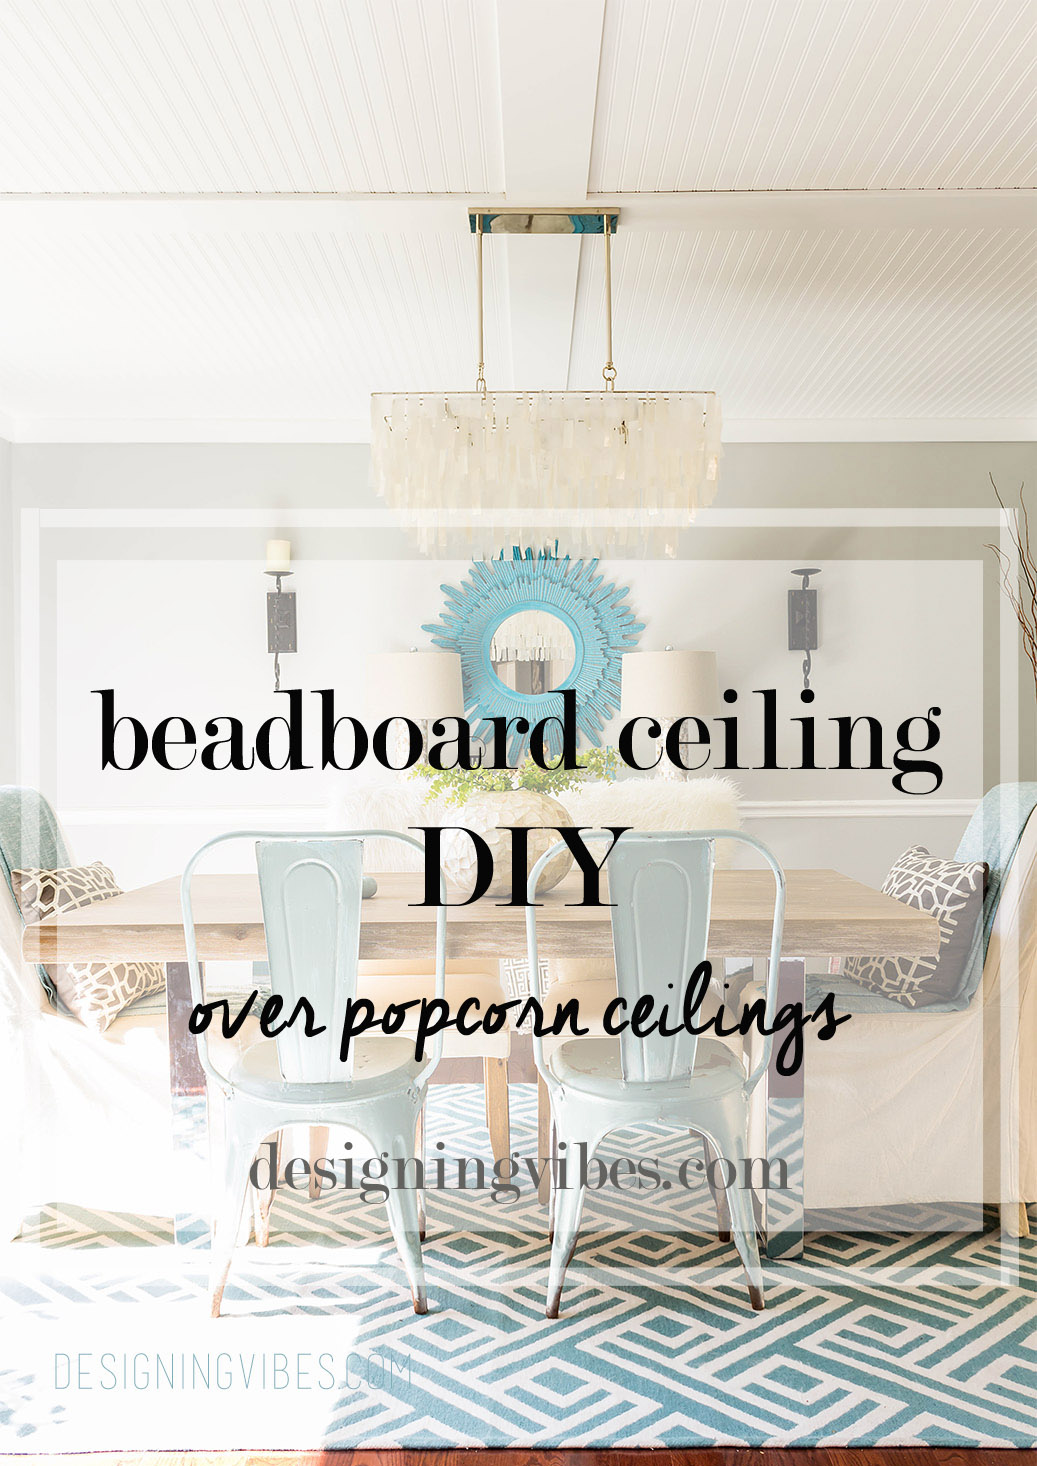 How to cover popcorn ceiling with beadboard planks diy tutorial beadboard ceiling over popcorn ceiling diy dailygadgetfo Image collections